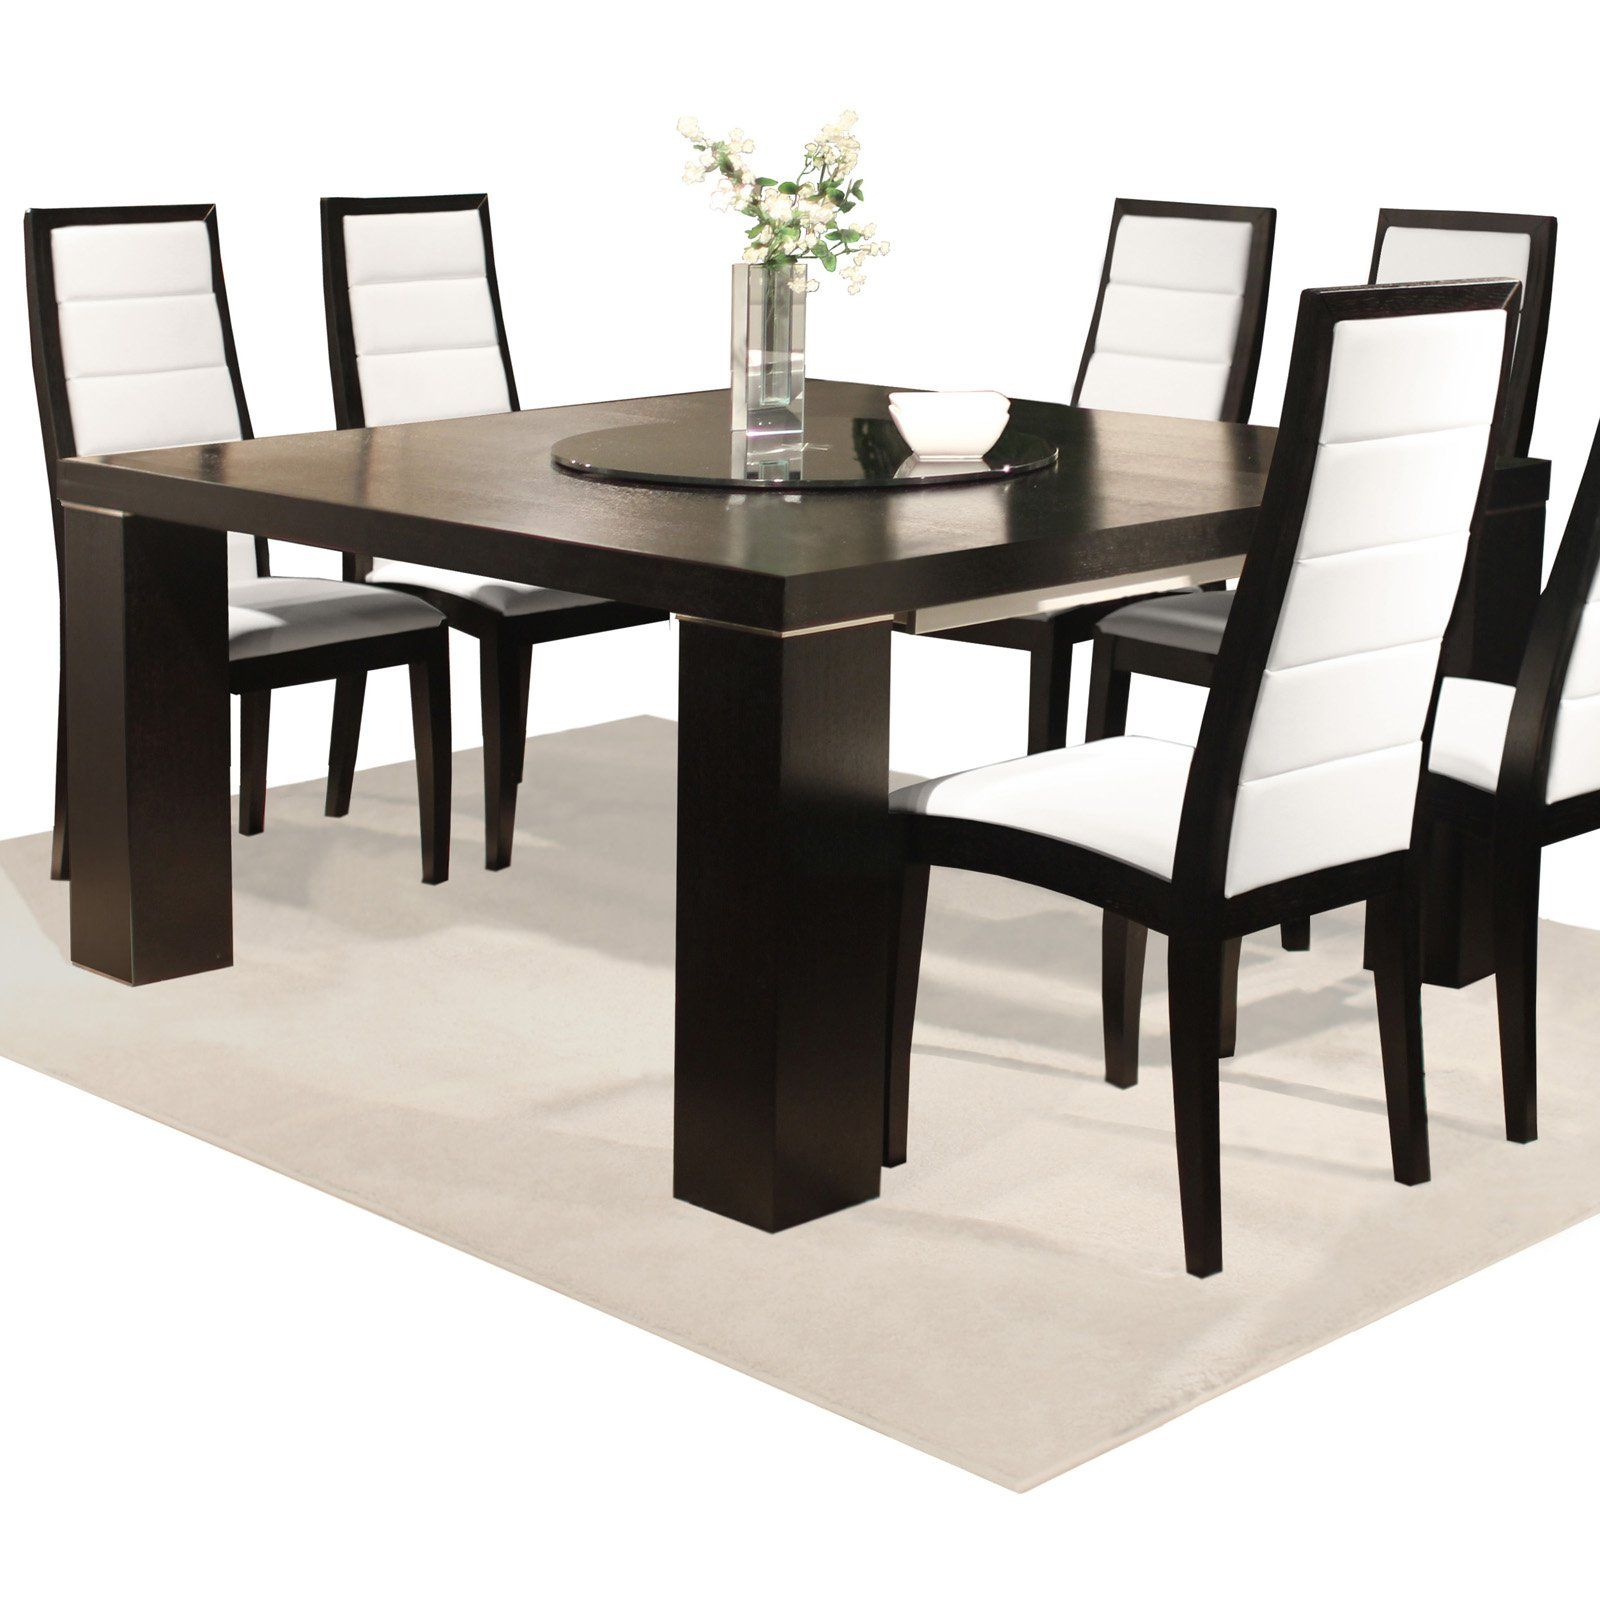 Jordan Square Extension Dining Table Wenge Whether You Have A